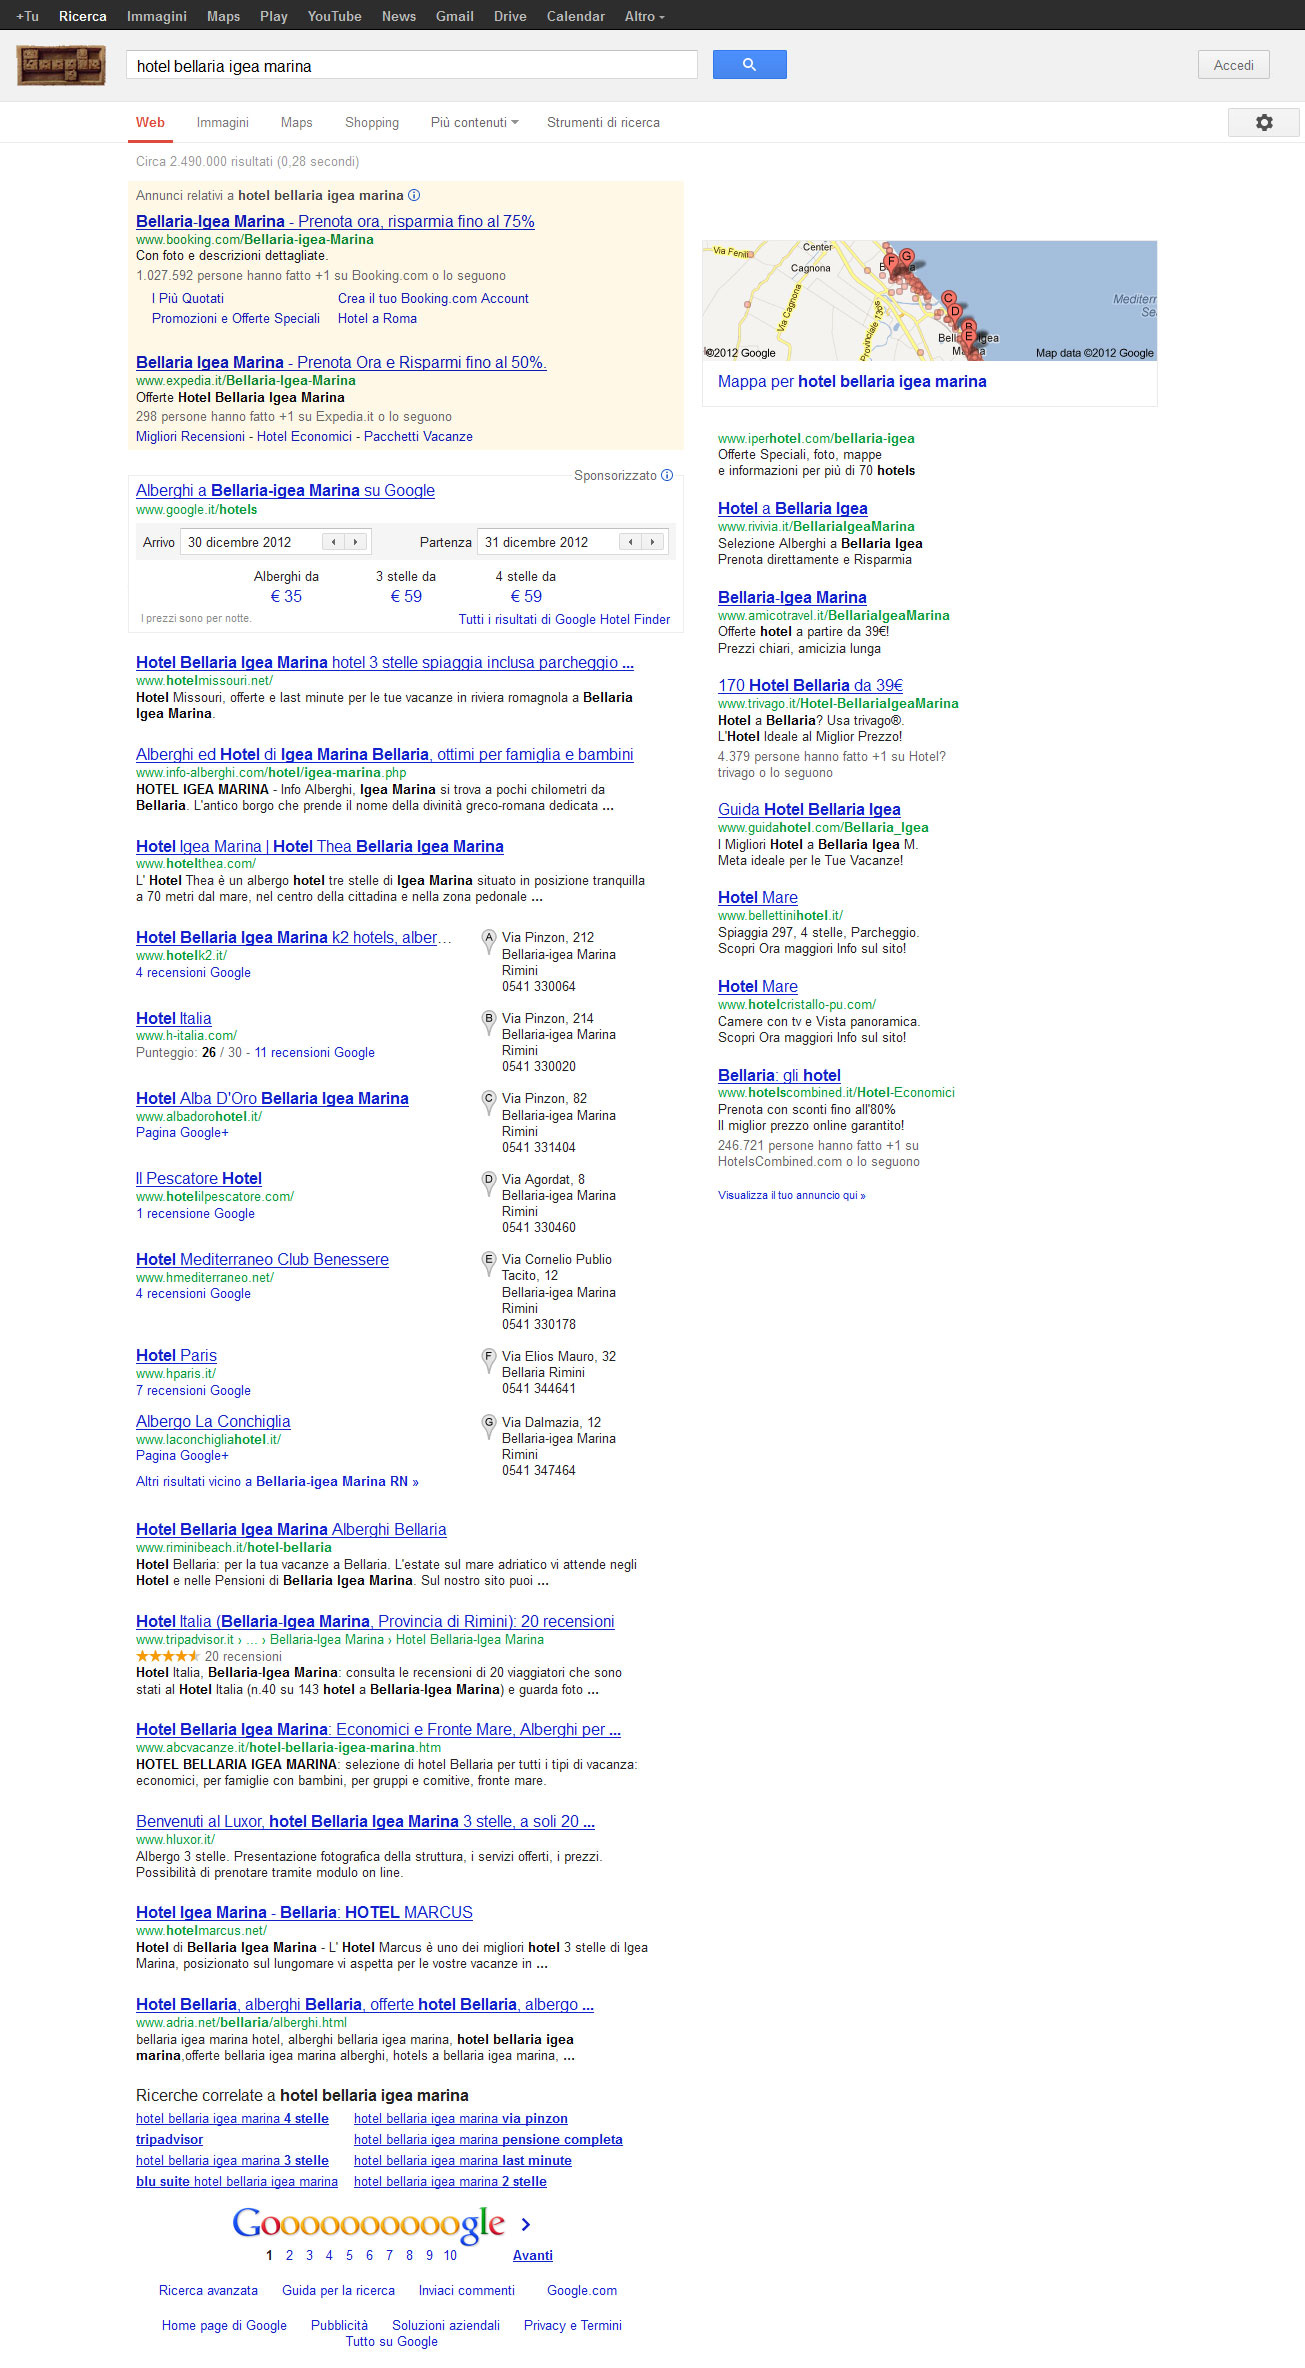 Google Integra Hotel Finder In SERP